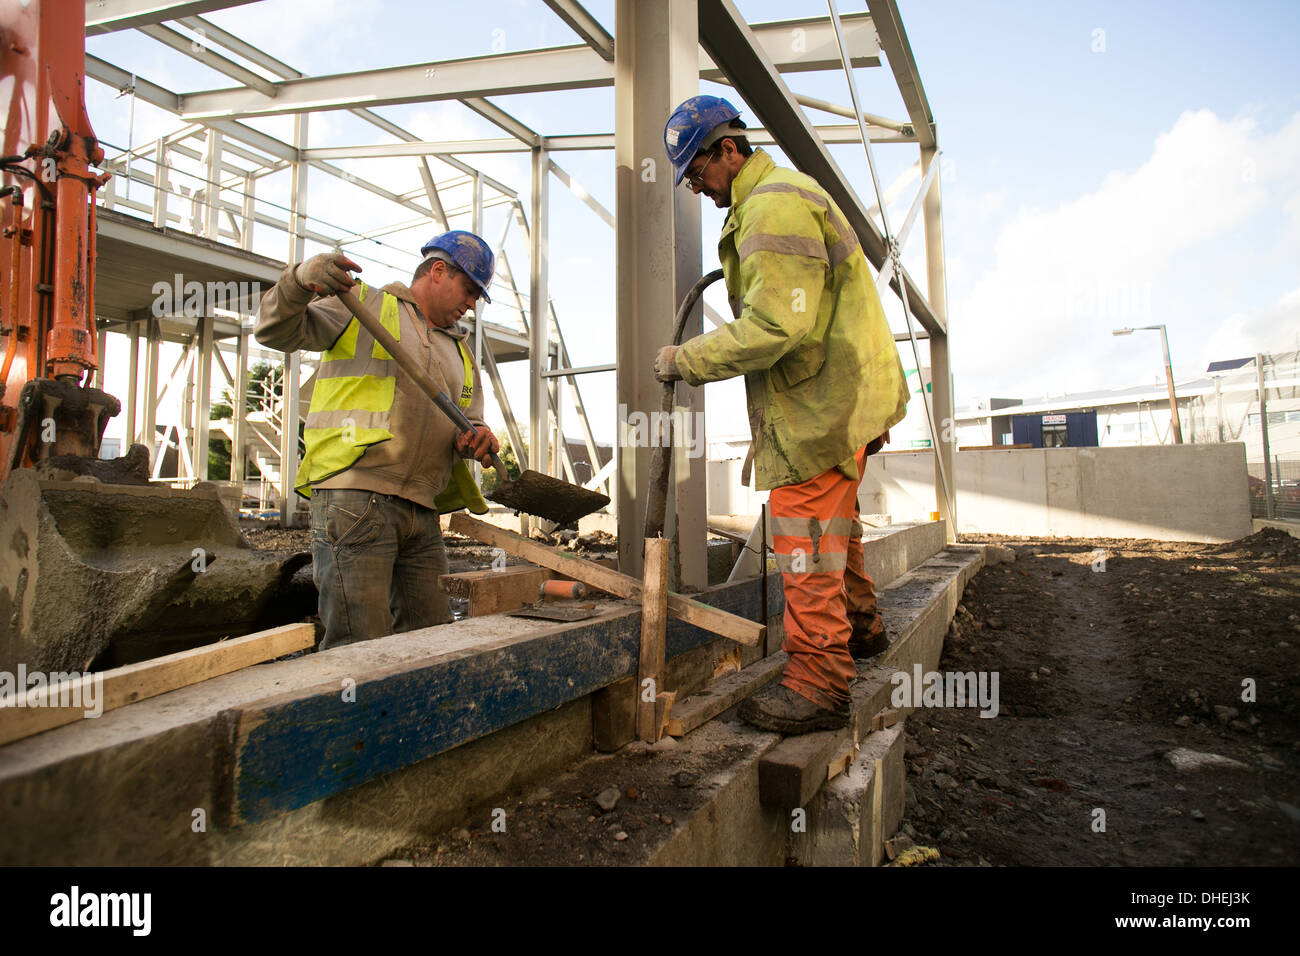 Construction work on a building site in Bolton , Greater Manchester - Stock Image